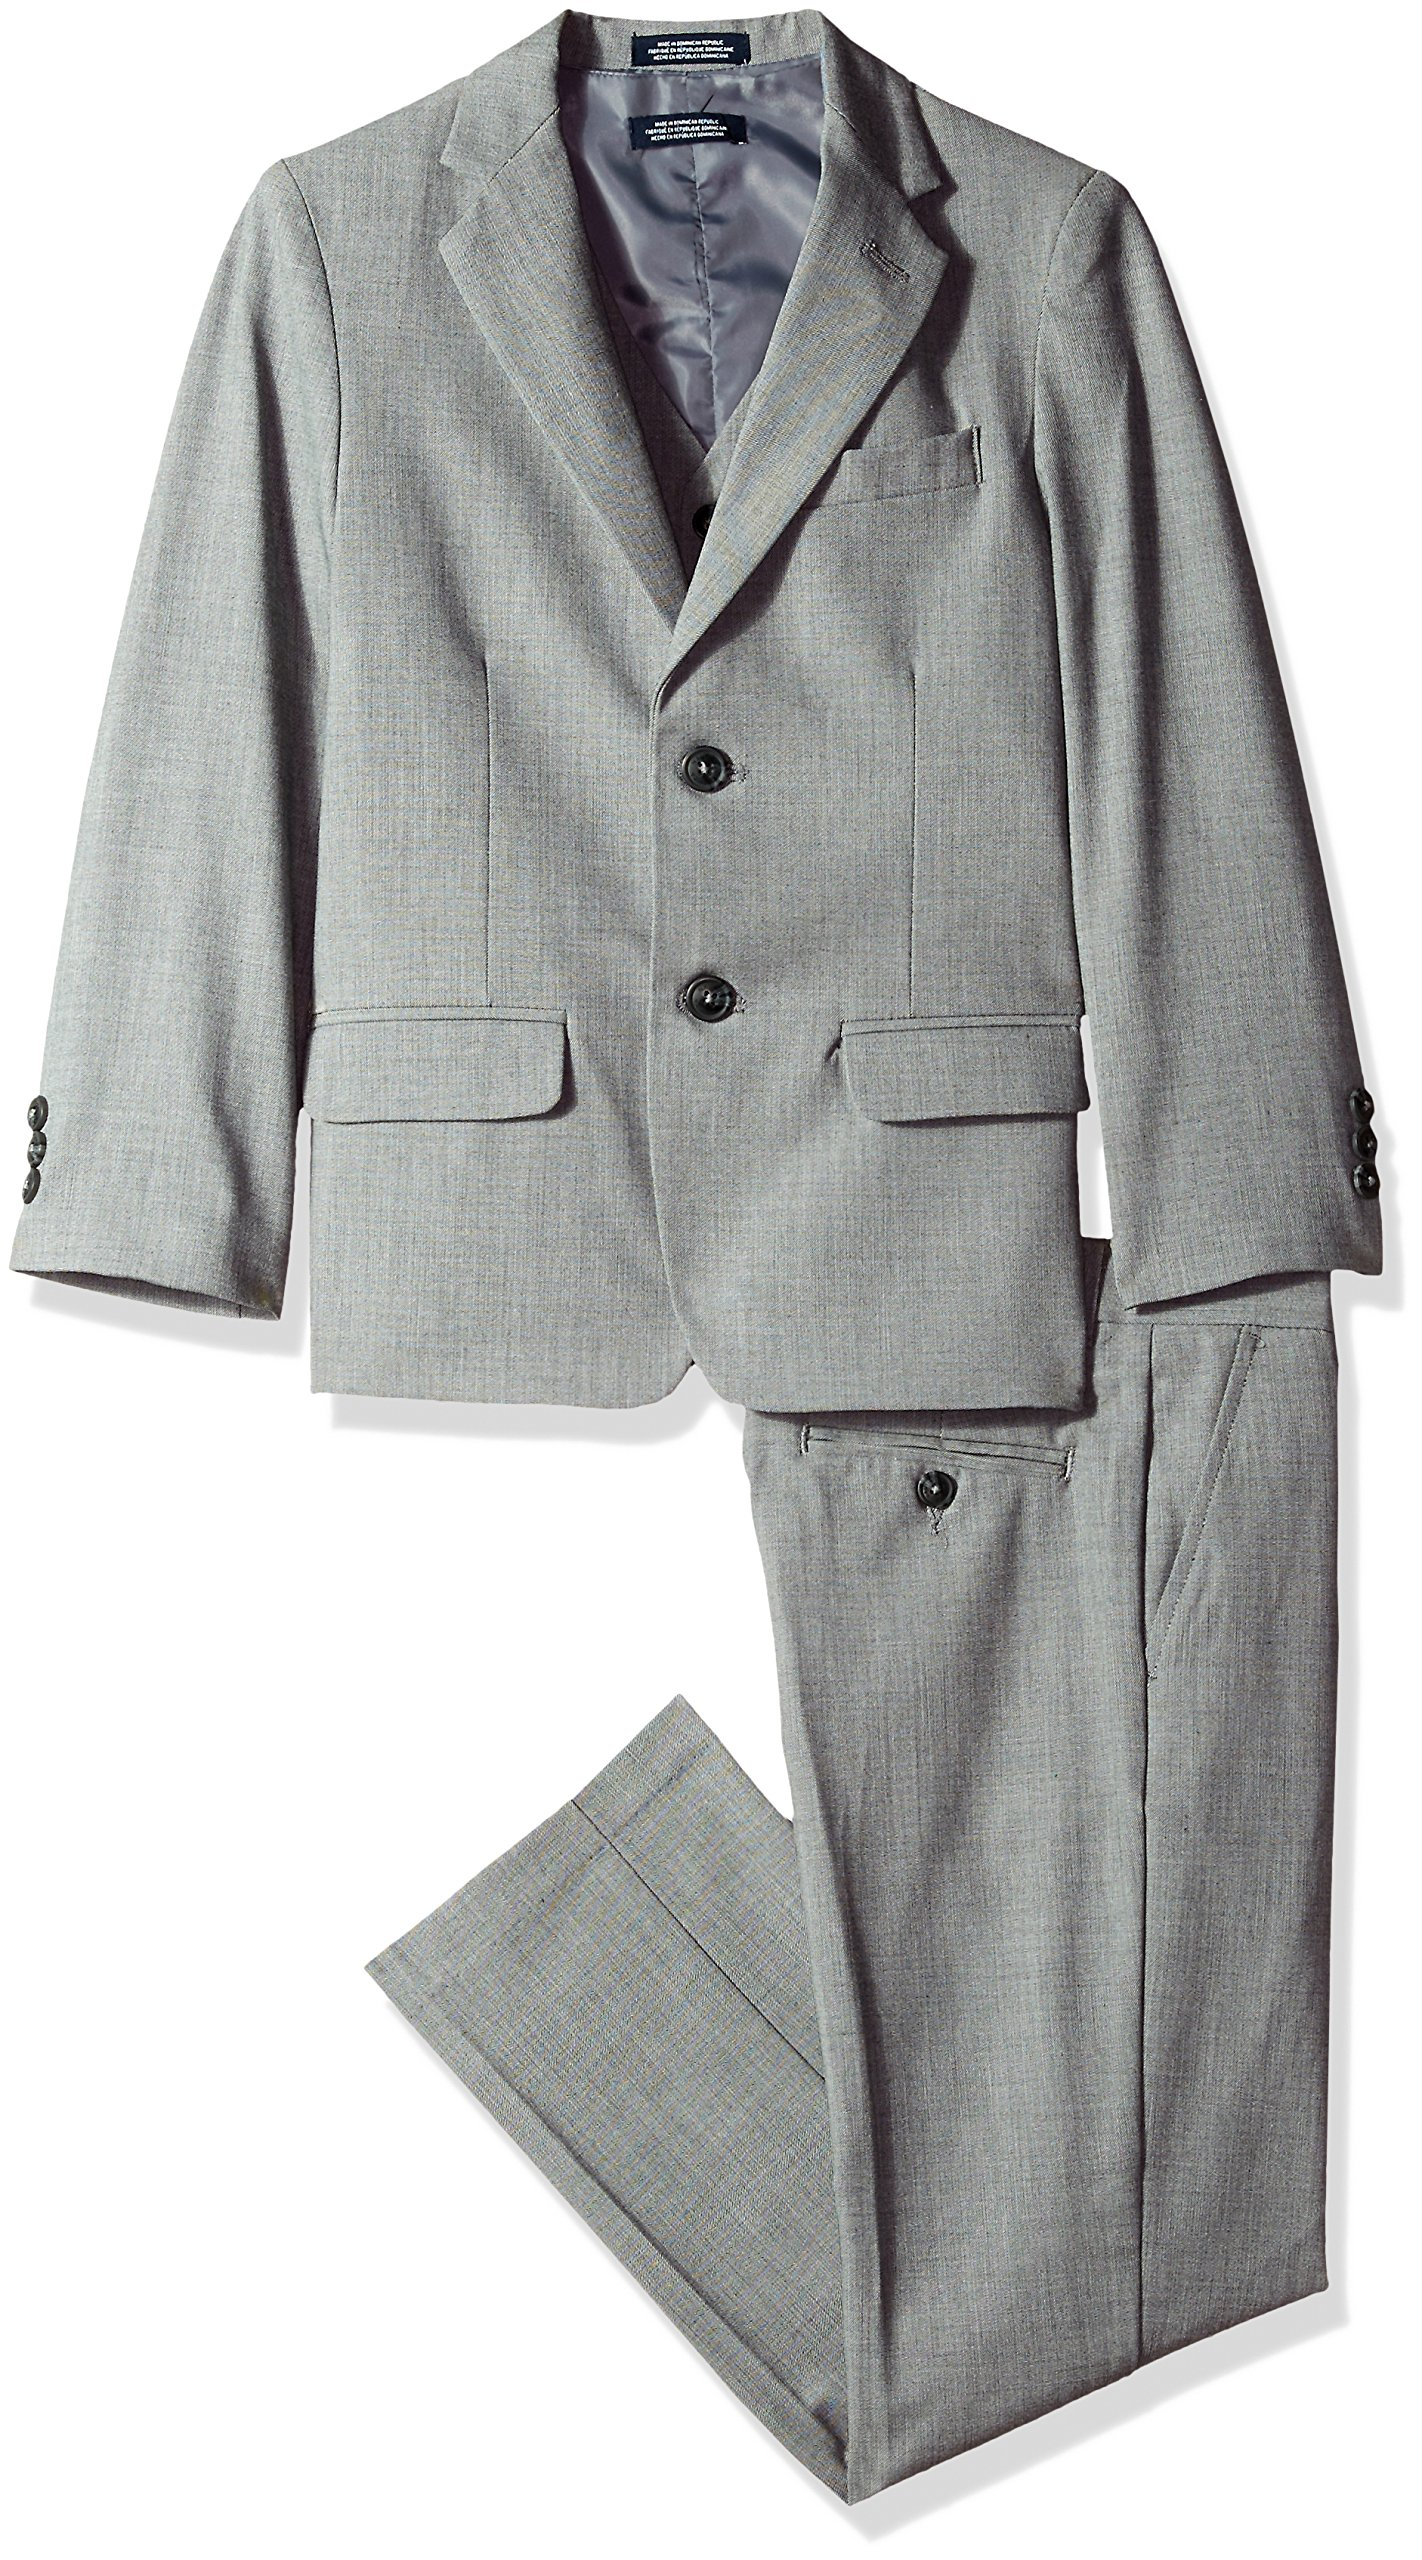 Nautica Three Piece Suit with Jacket, Pant, and Vest, Light Grey, 14